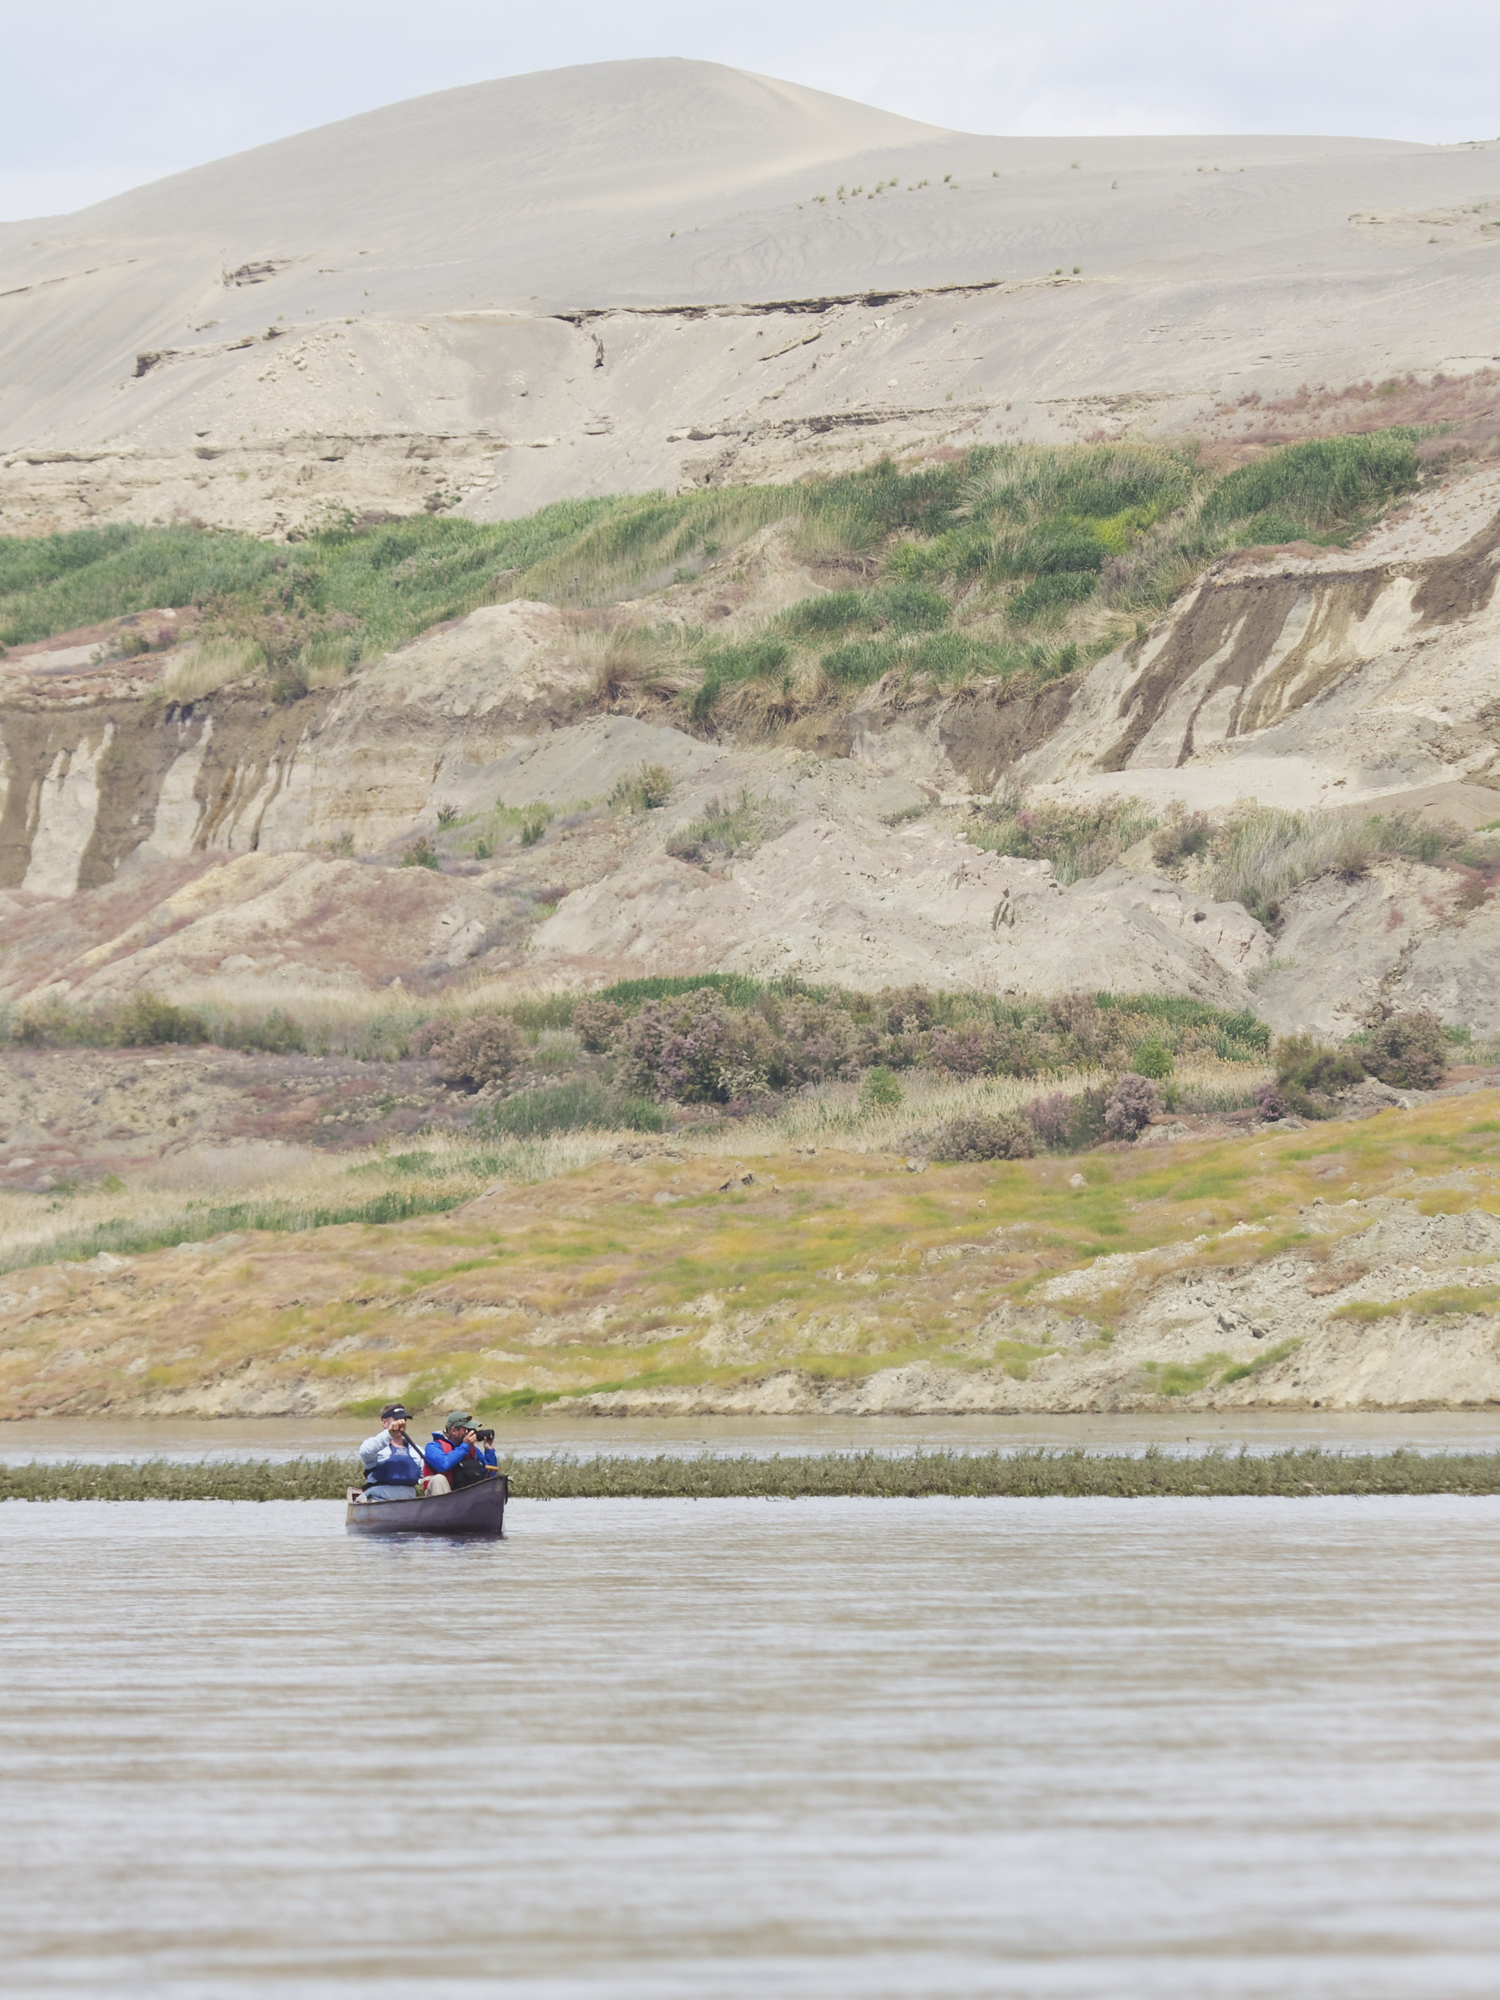 Canoeing on the Columbia River below the bluffs of the Hanford Reach National Monument. Photo by Michael Deckert.